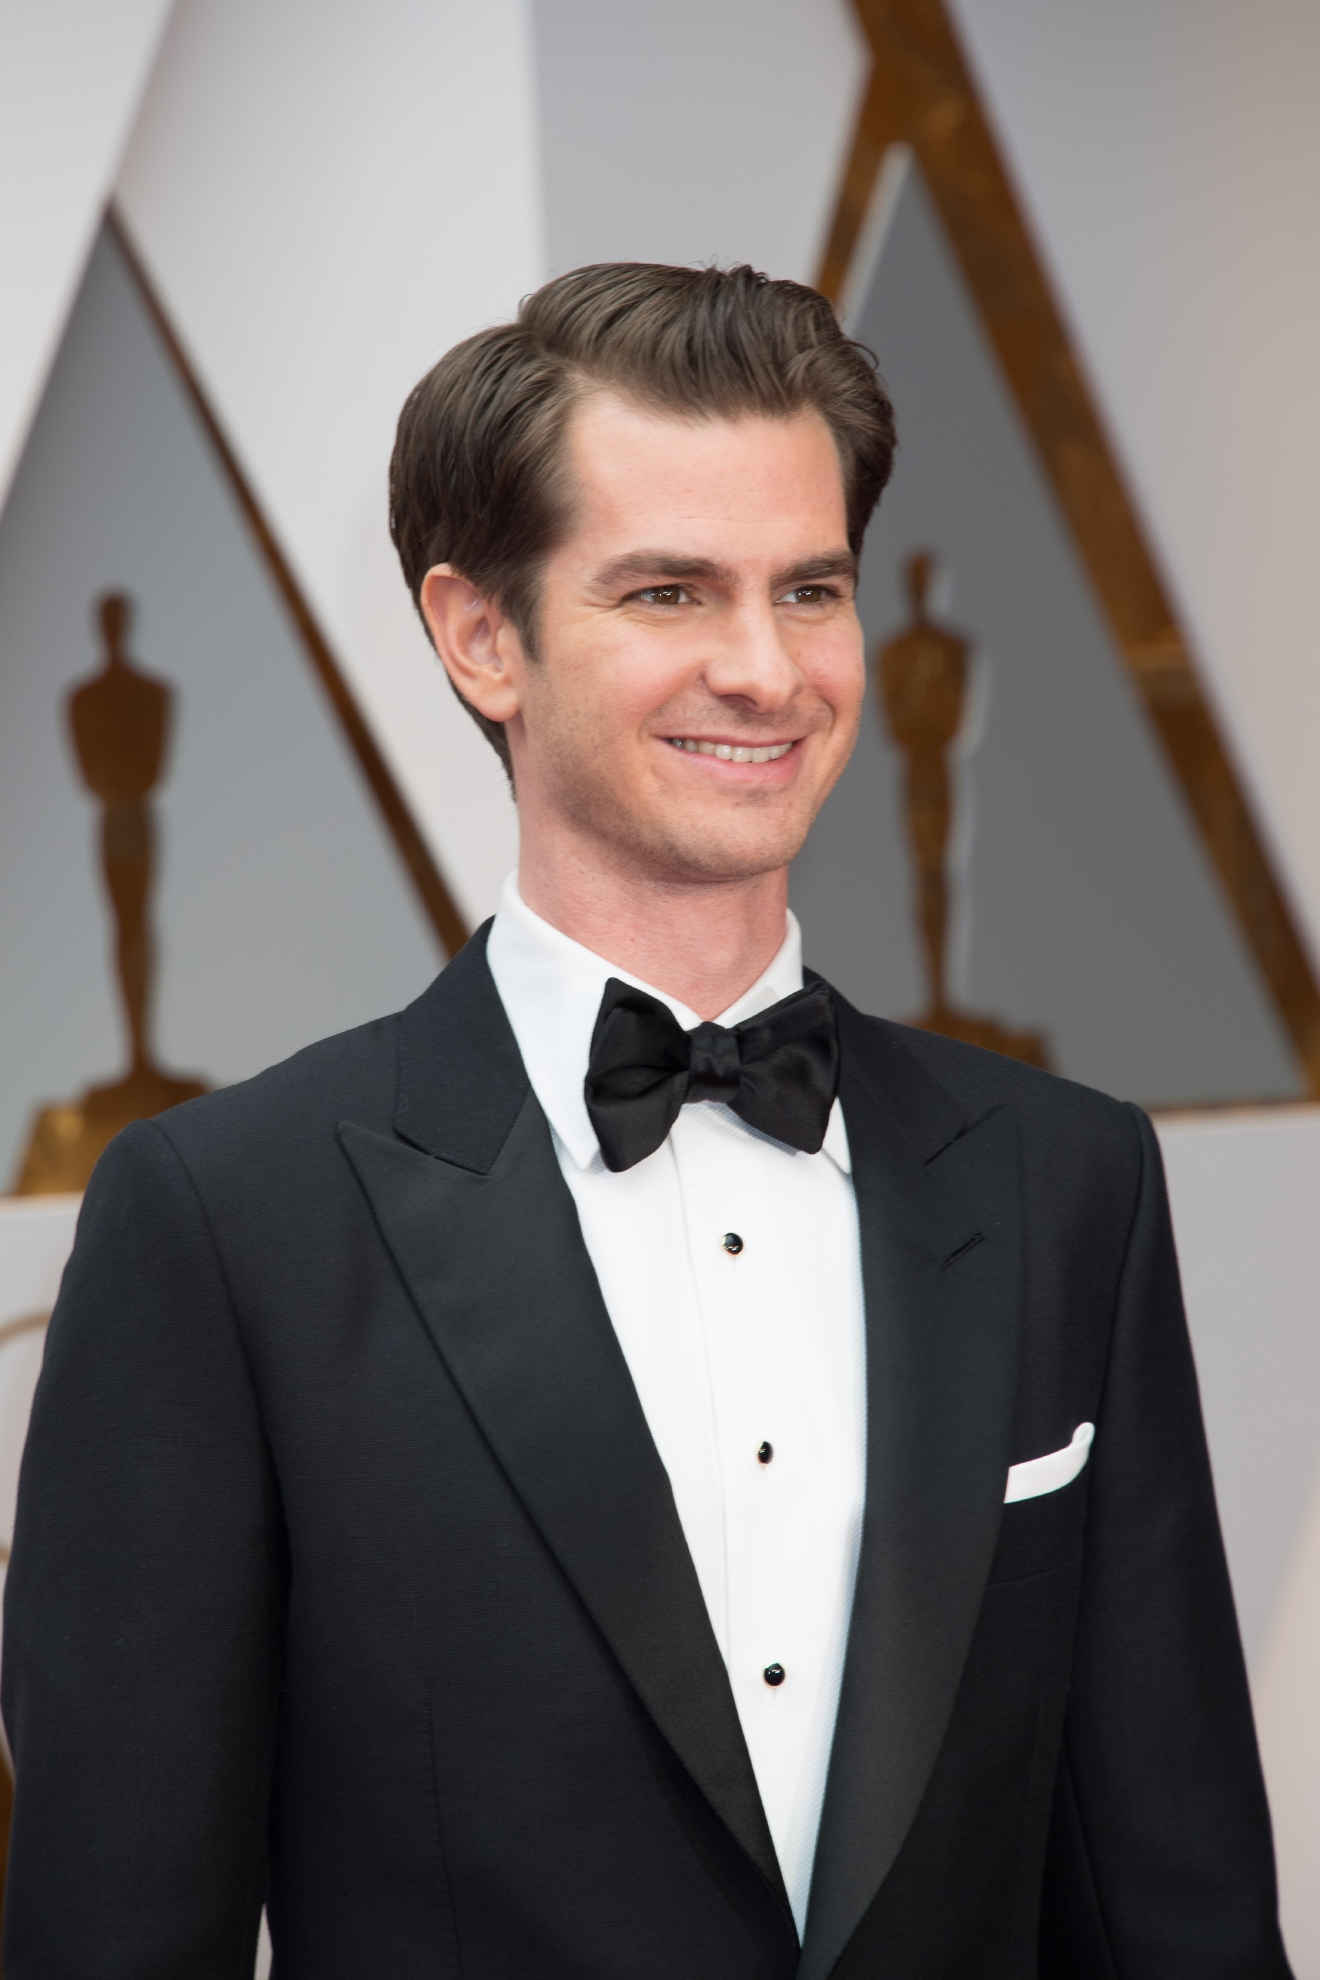 Andrew Garfield, Oscar® nominee, arrives on the red carpet of The 89th Oscars® at the Dolby® Theatre in Hollywood, CA on Sunday, February 26, 2017. (©A.M.P.A.S.)